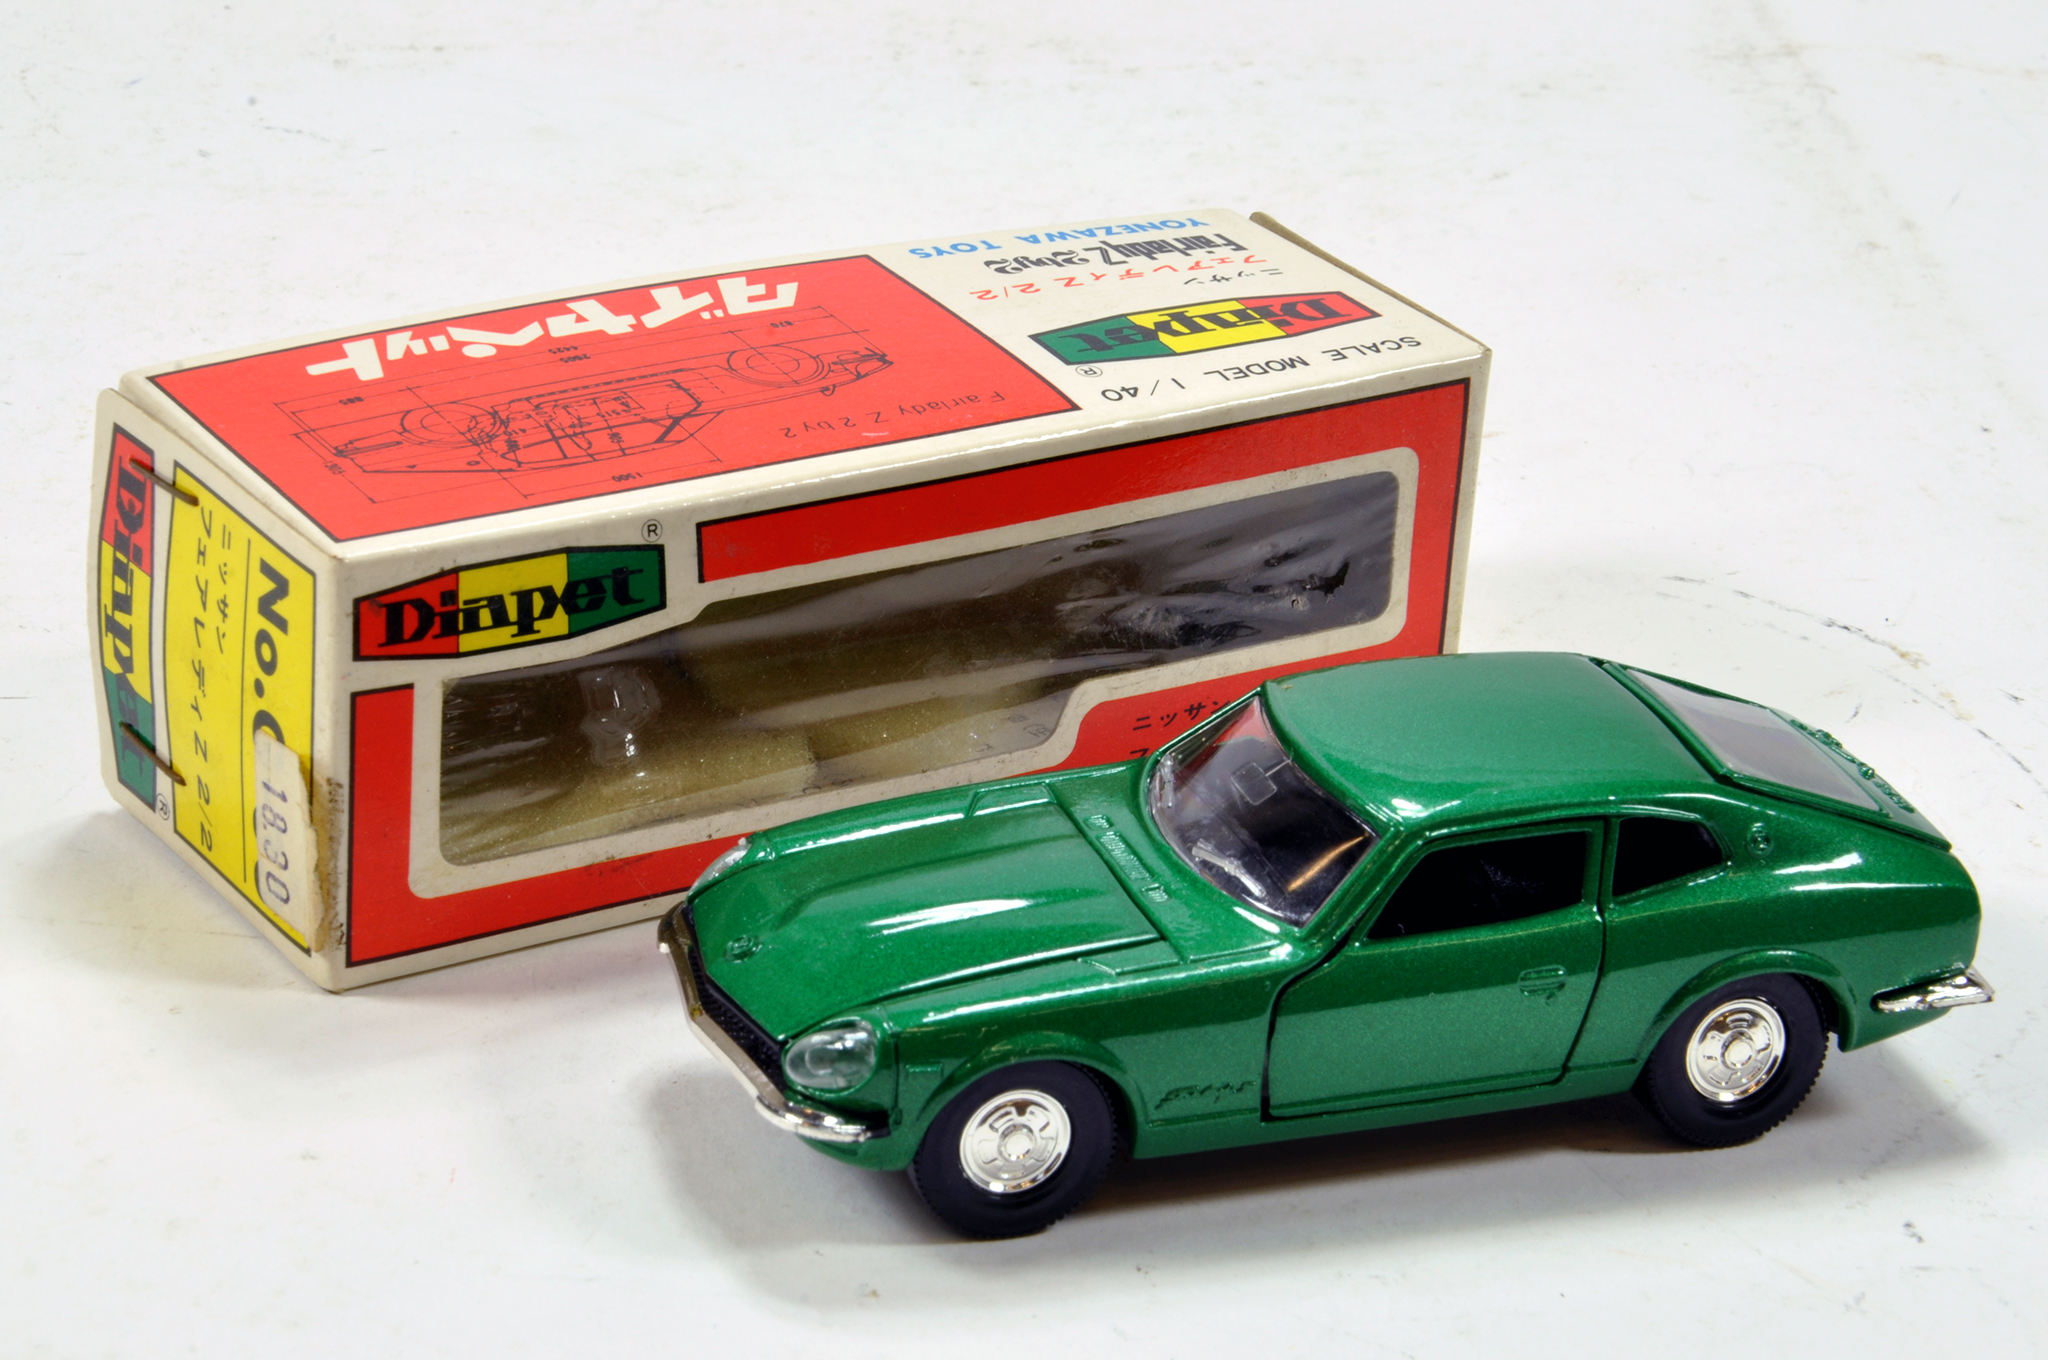 Lot 1352 - Diapet 1/40 diecast issue comprising No.1830 E to NM in Box.